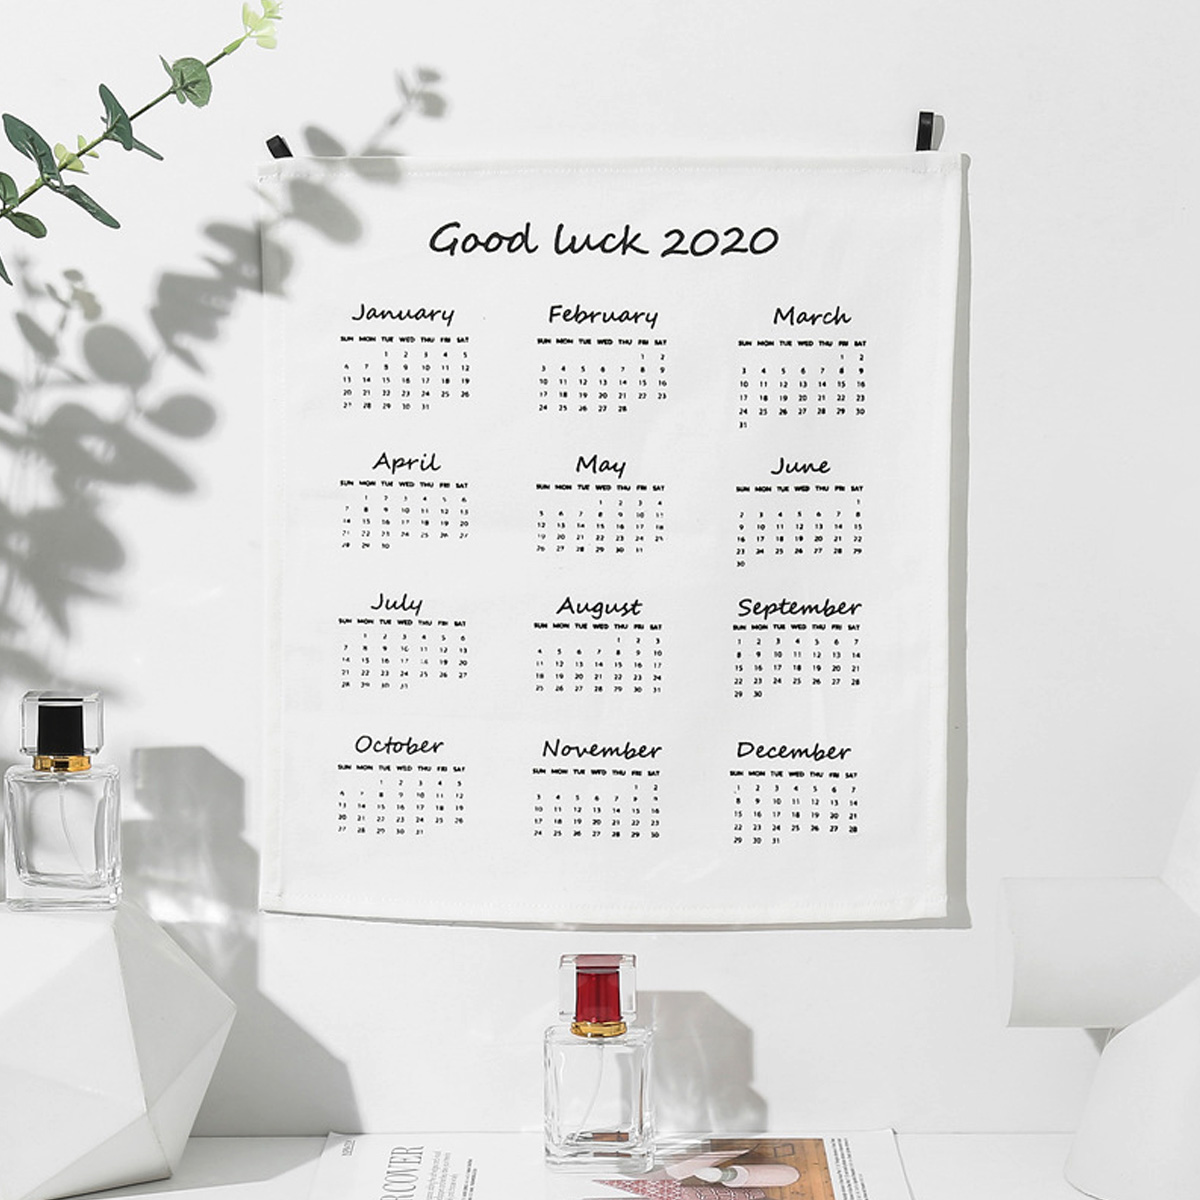 2020 Wall Calendar Fabric Printed Calendar Clock Yearly Diary Study Planner Advent Calendar Wall Hanging Calendar Home Office